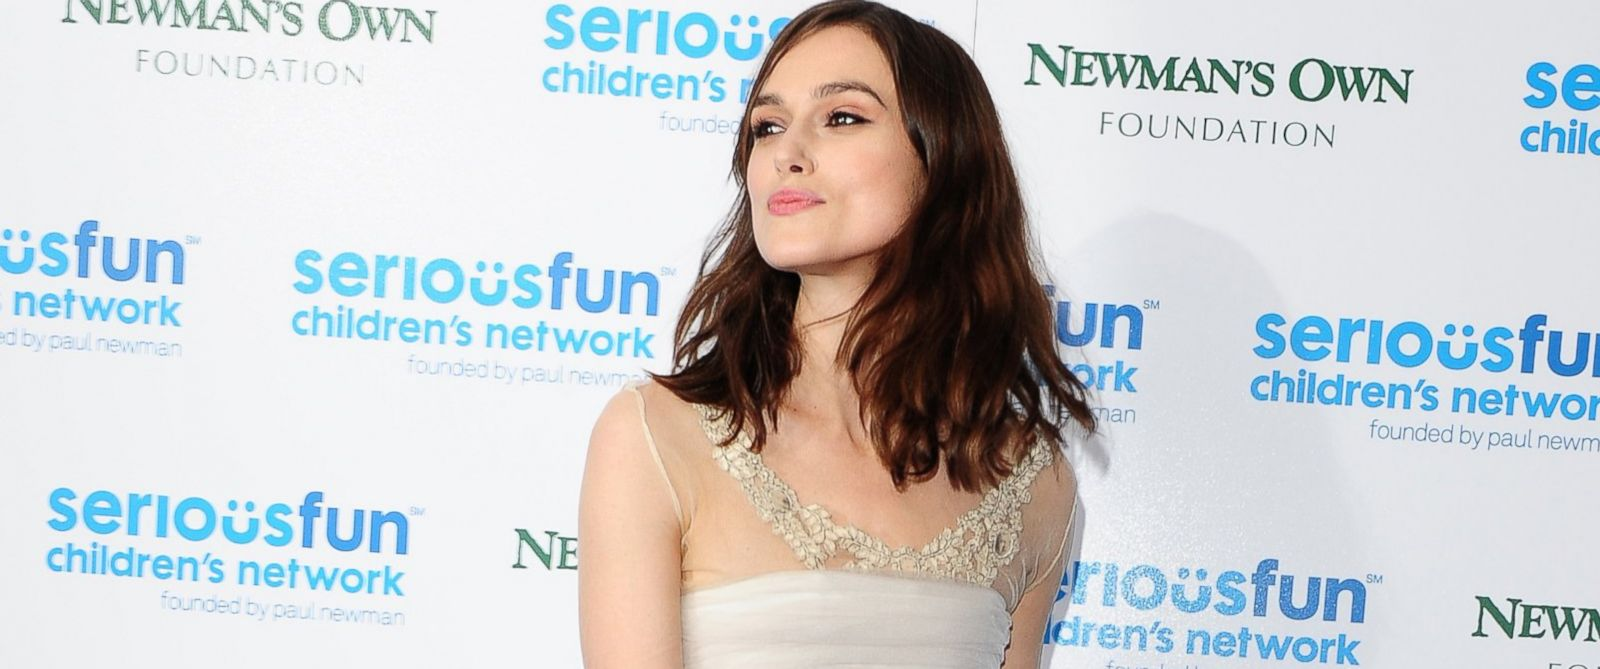 PHOTO: Keira Knightley attends the SeriousFun Childrens Network London Gala, Dec. 3, 2013, in London.